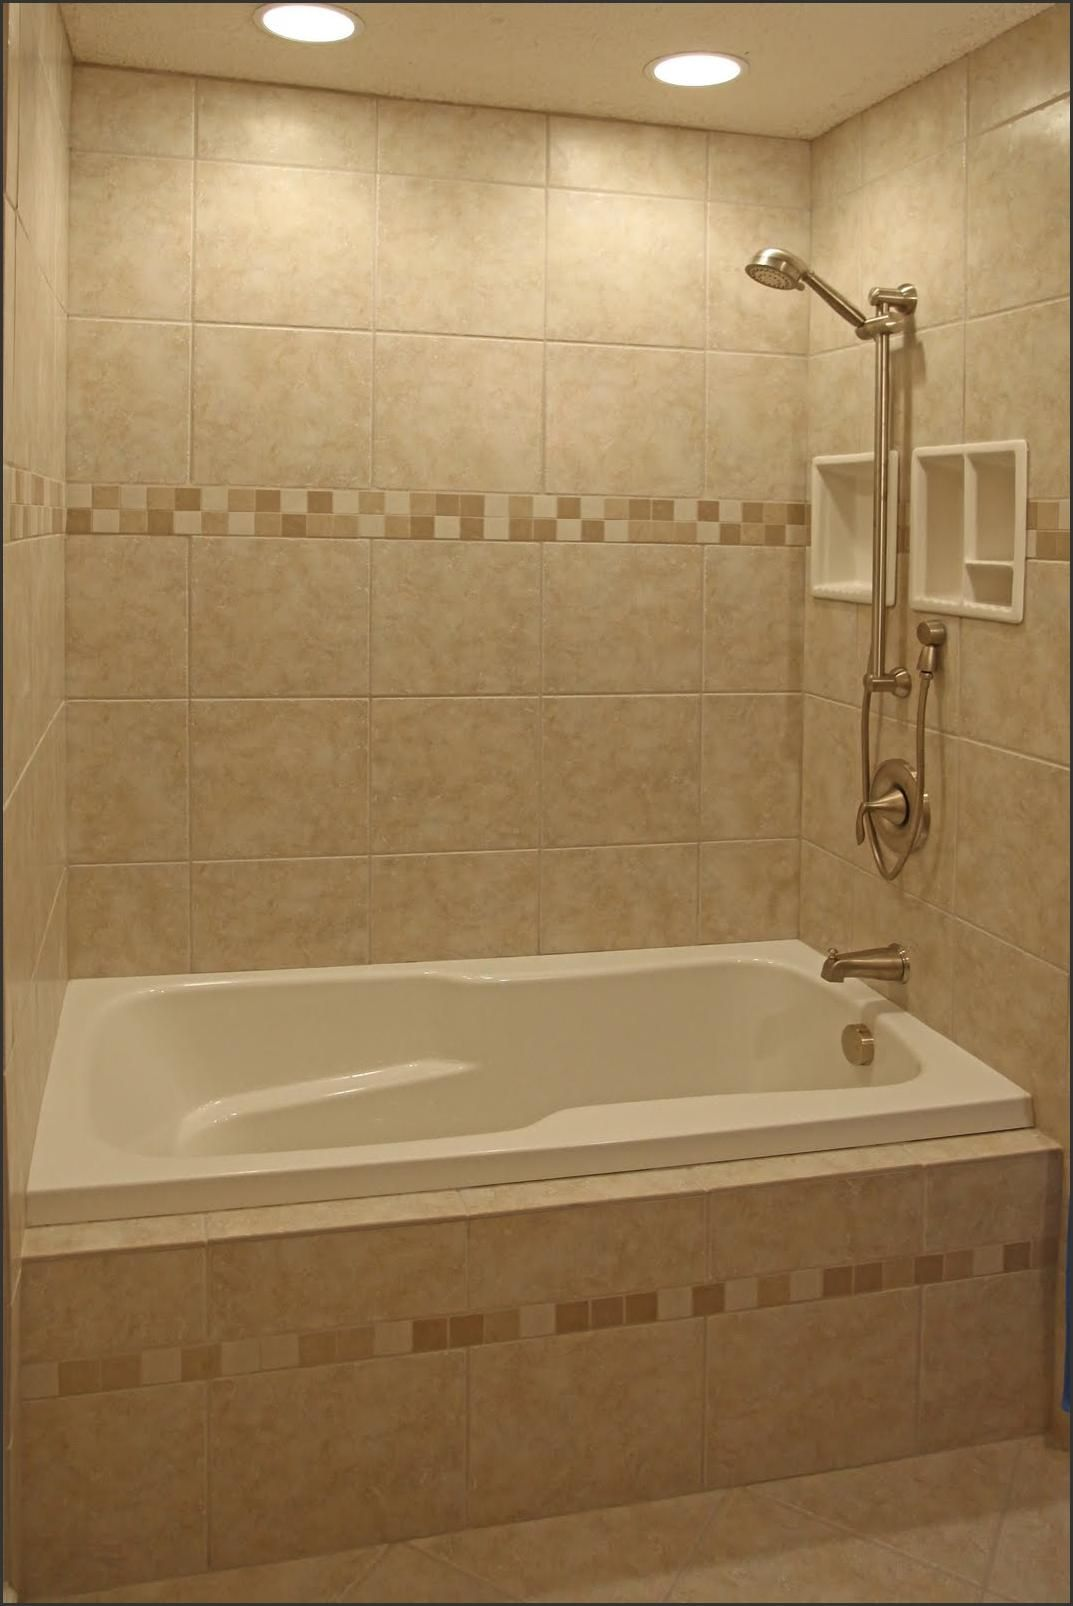 Love everything in this: tub insert, neutral warm tile with accent ...